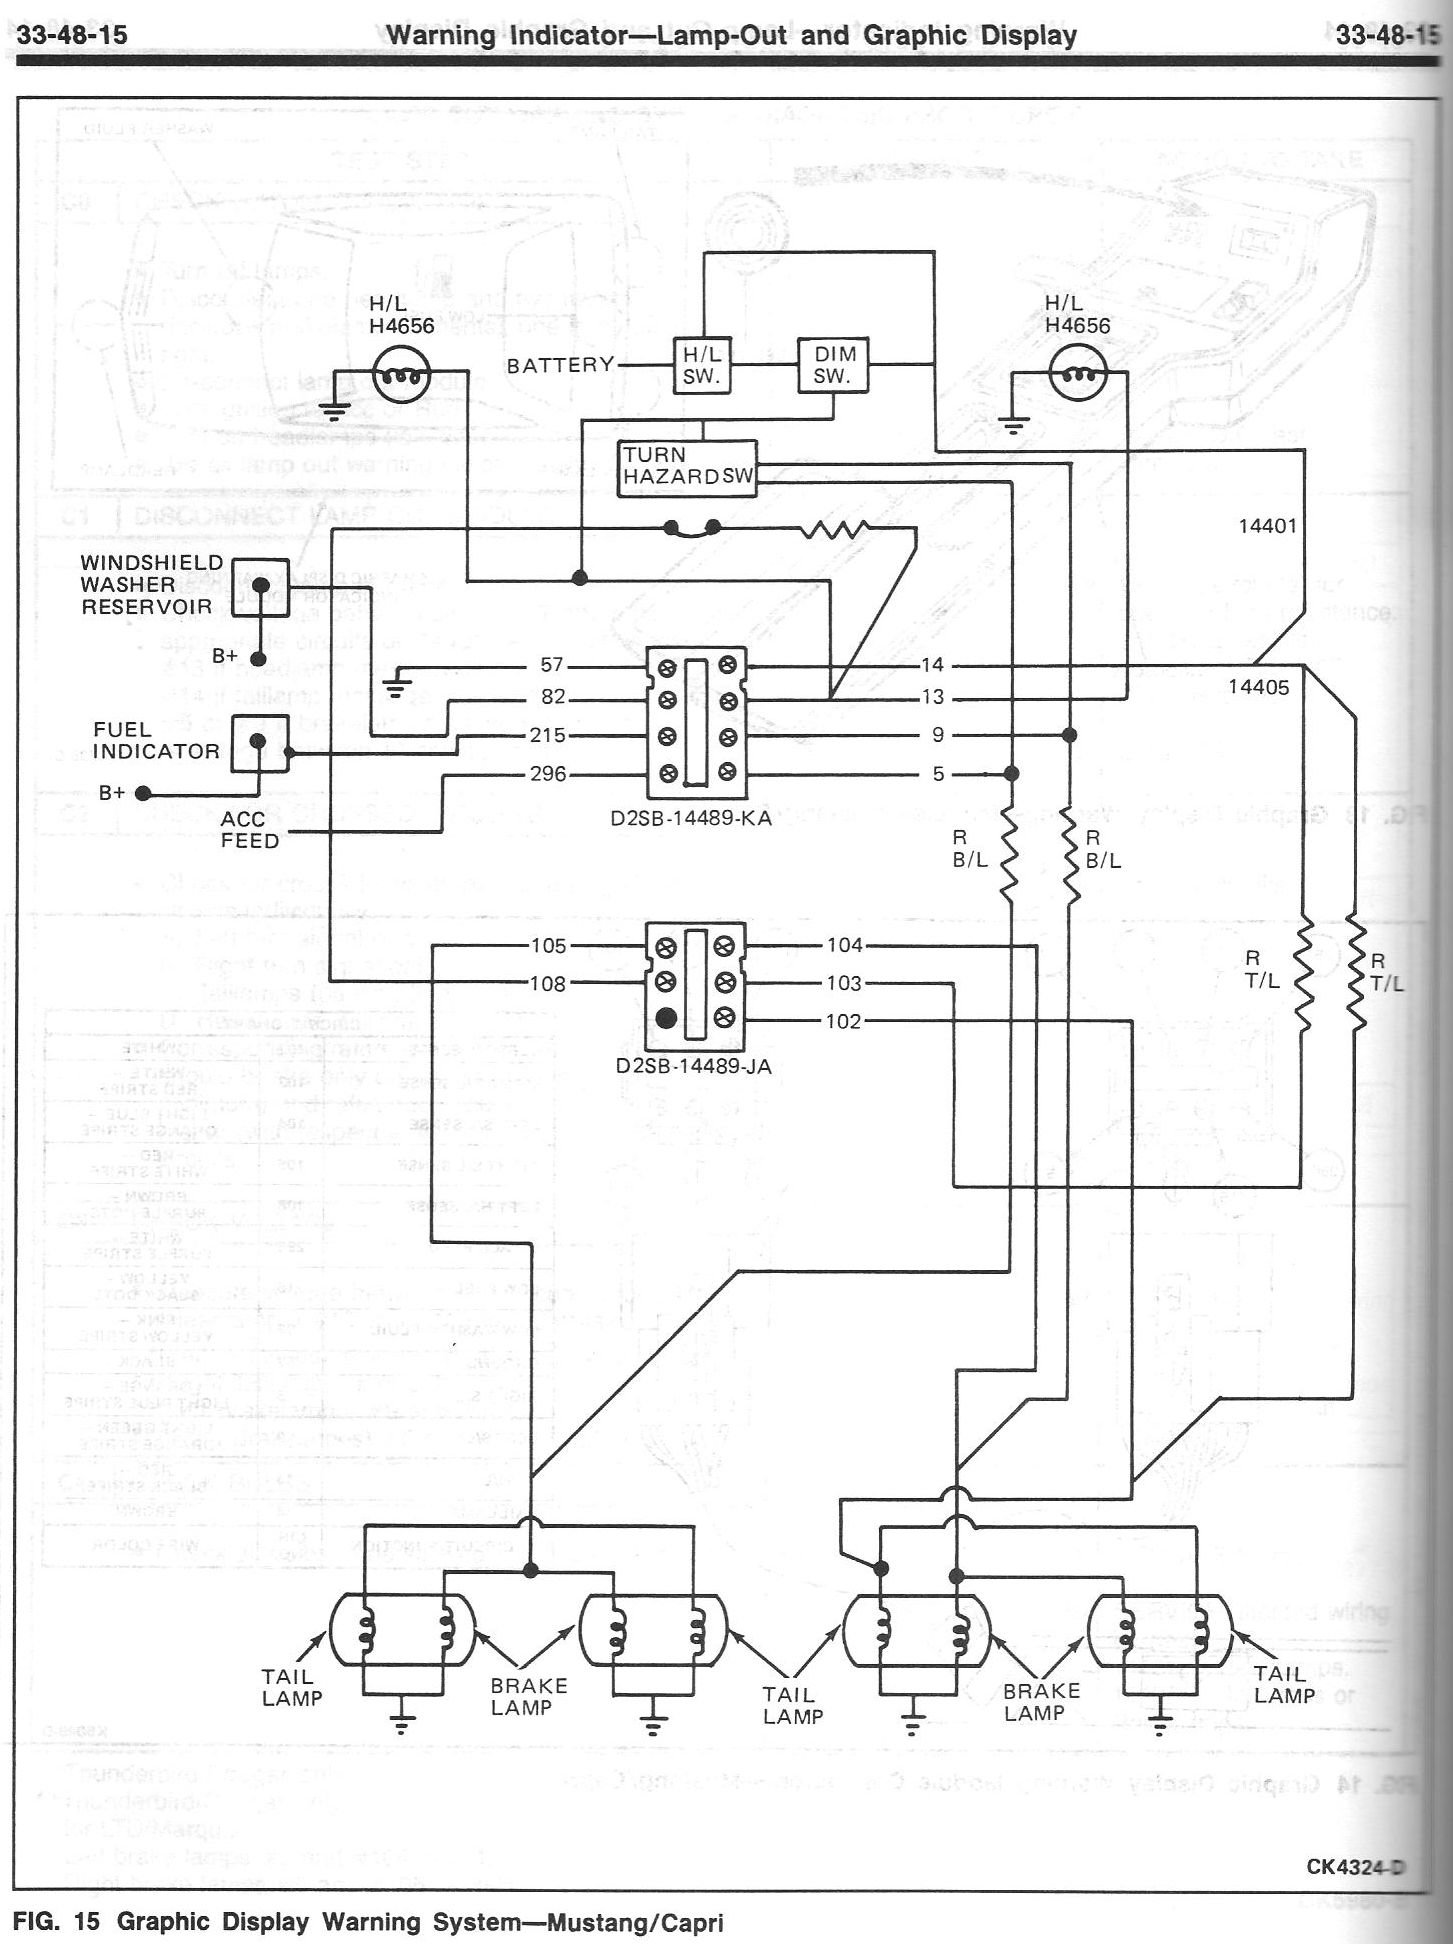 Warning Indicator Light Wiring Diagram Online Schematics 1986 Mustang Gt Lights Ford Forum Reverse Click Image For